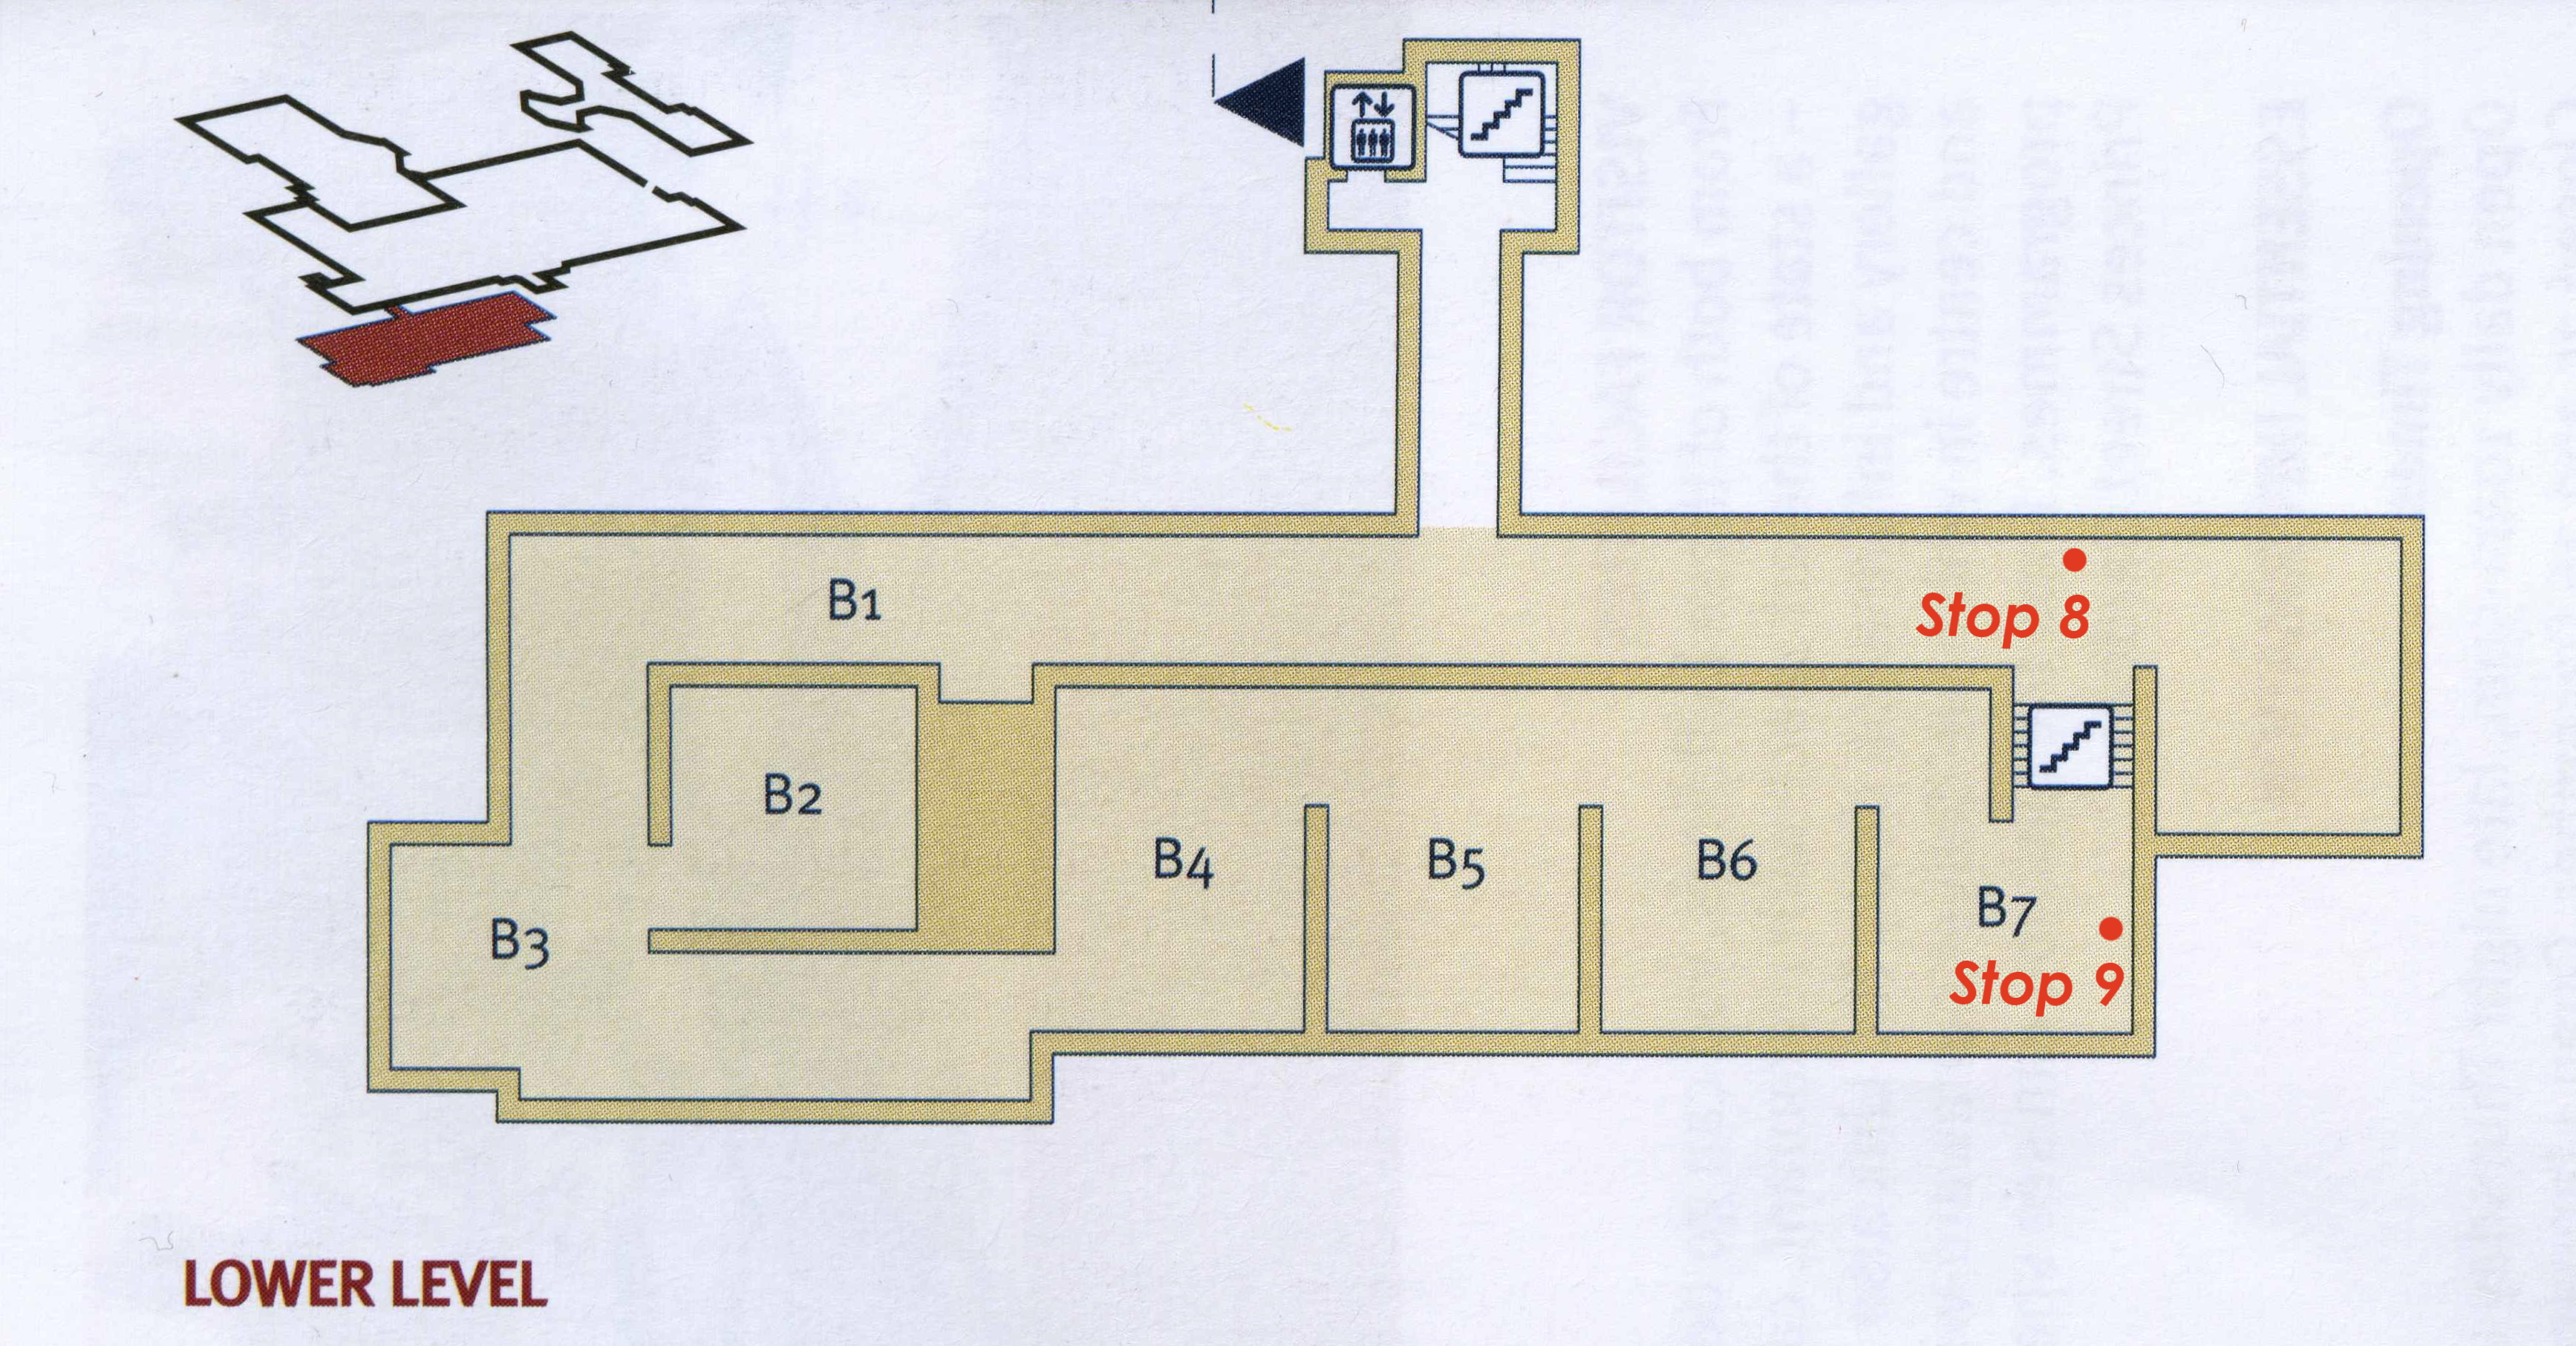 Lower floor plan with tour stopping points